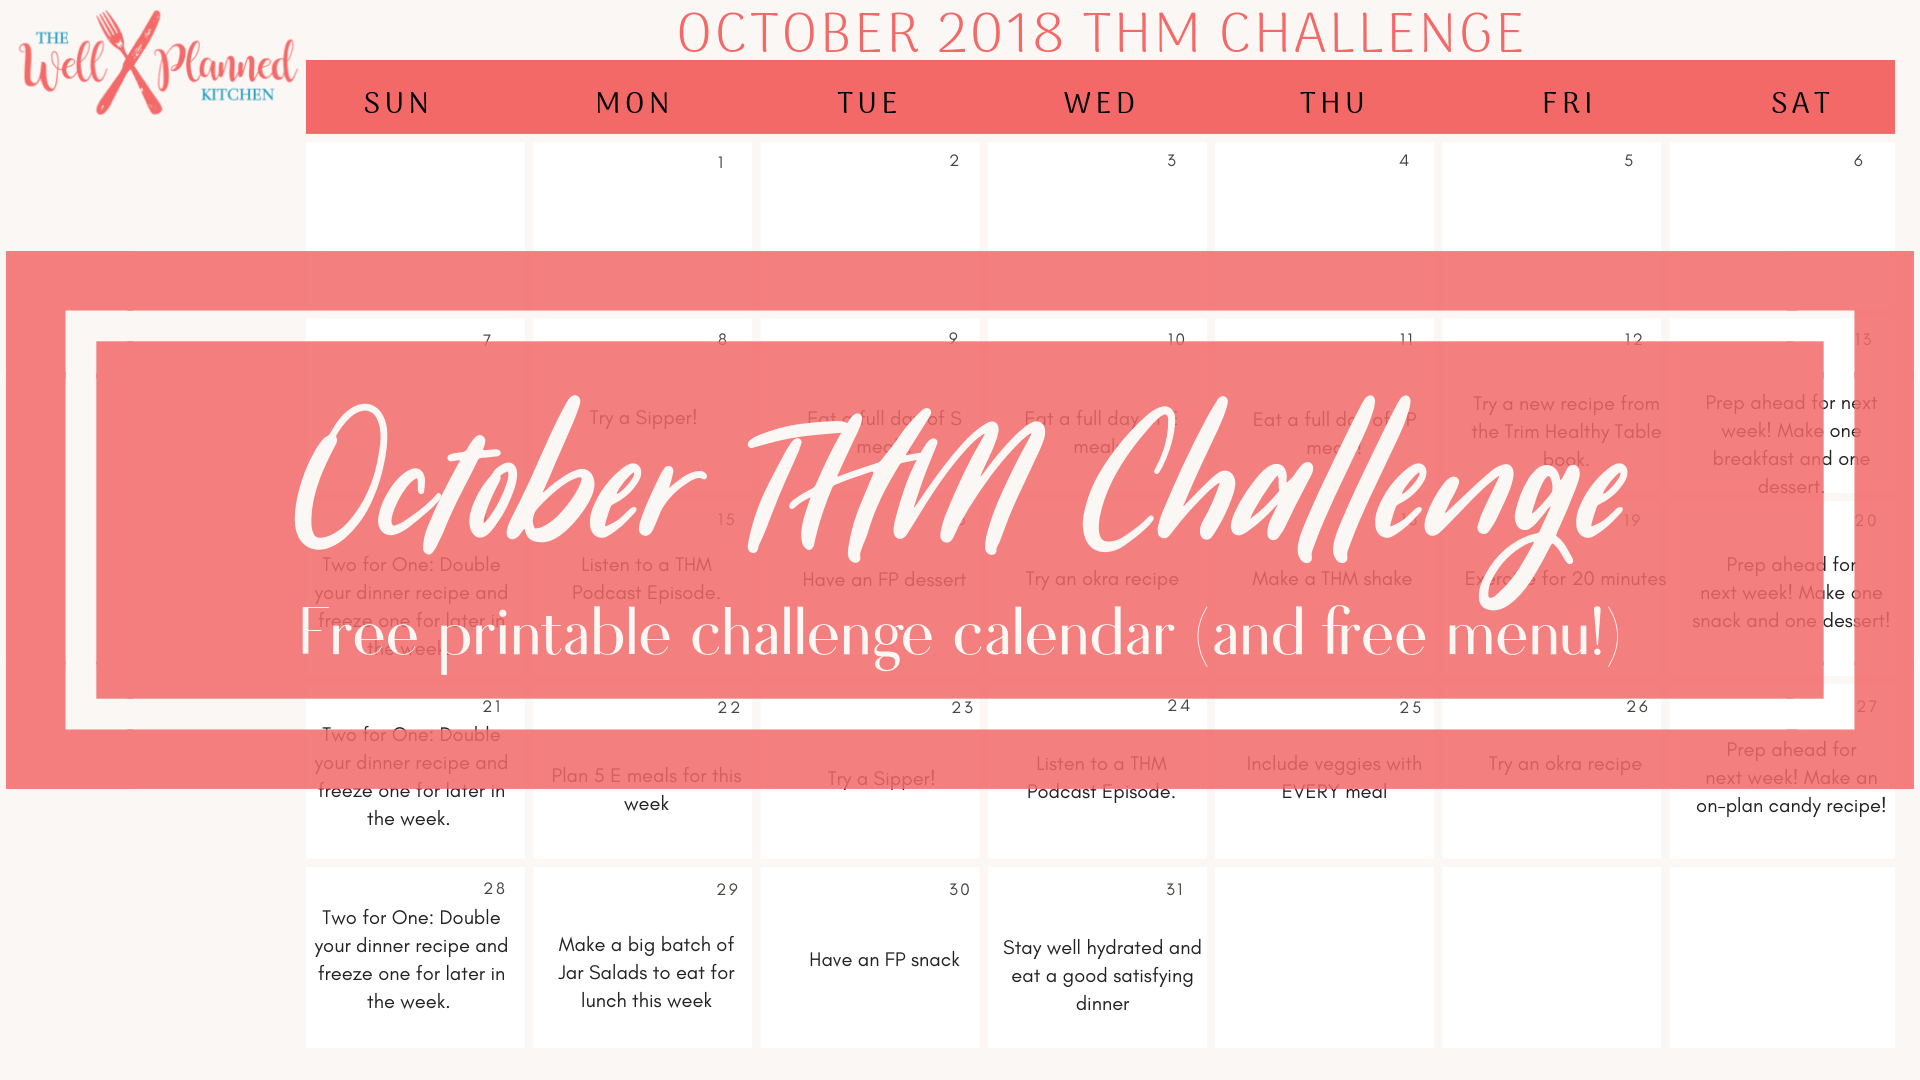 October Challenge to Get 100% on Plan!